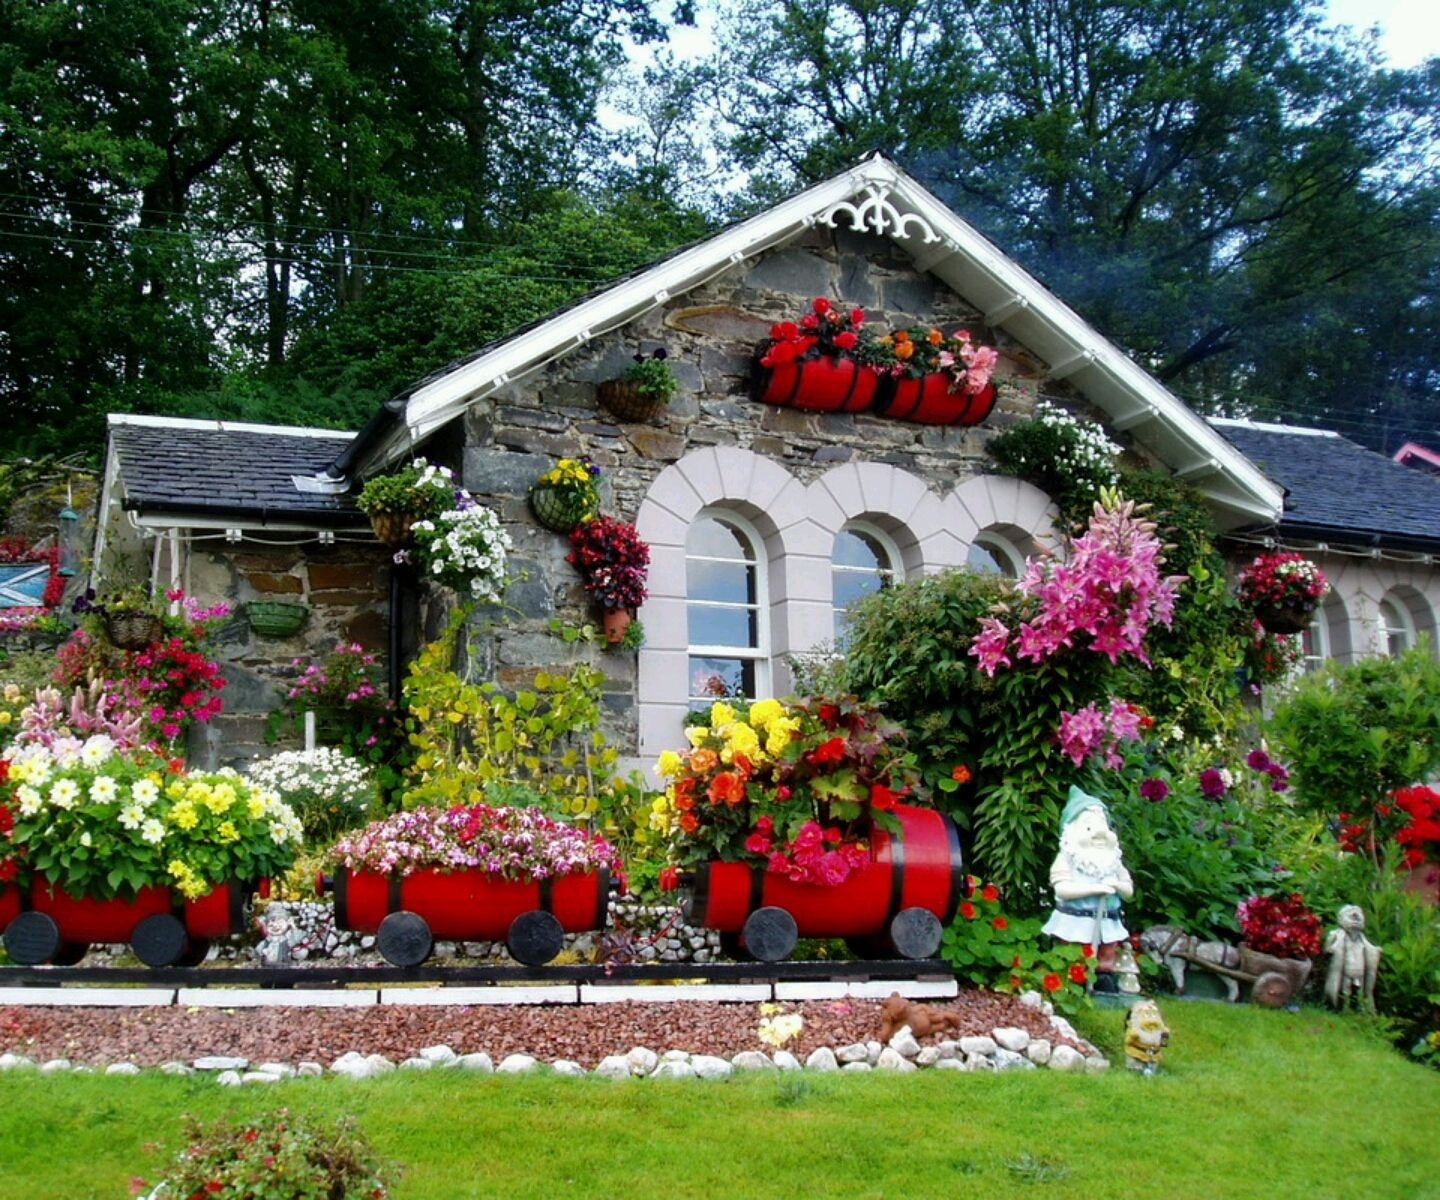 17 Best images about House with Beautiful Garden on Pinterest